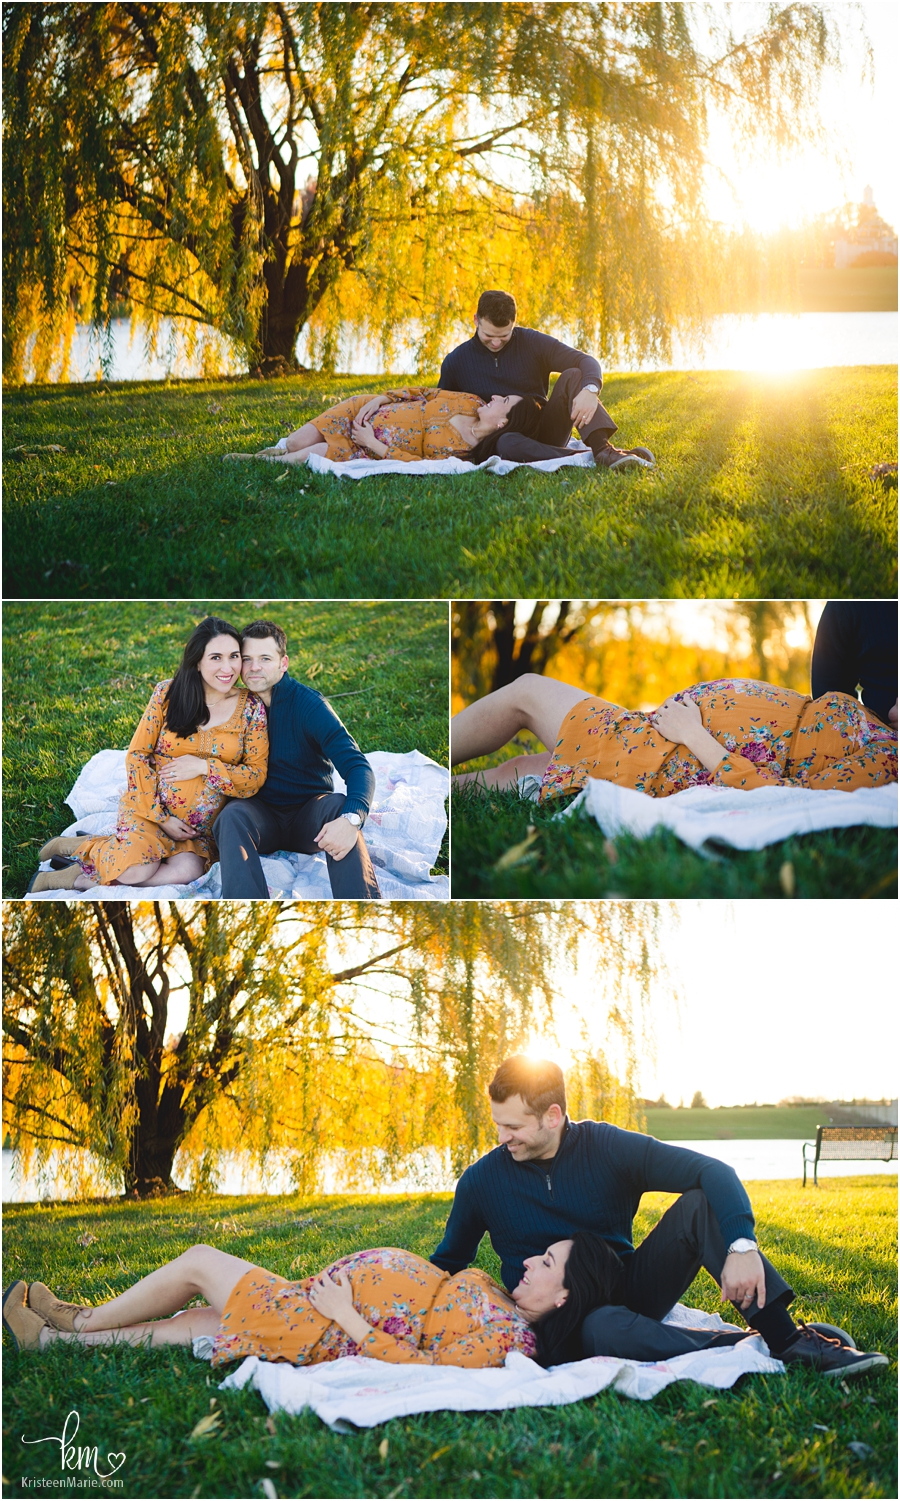 couple under a tree with baby bump - Indy maternity photography at golden hour